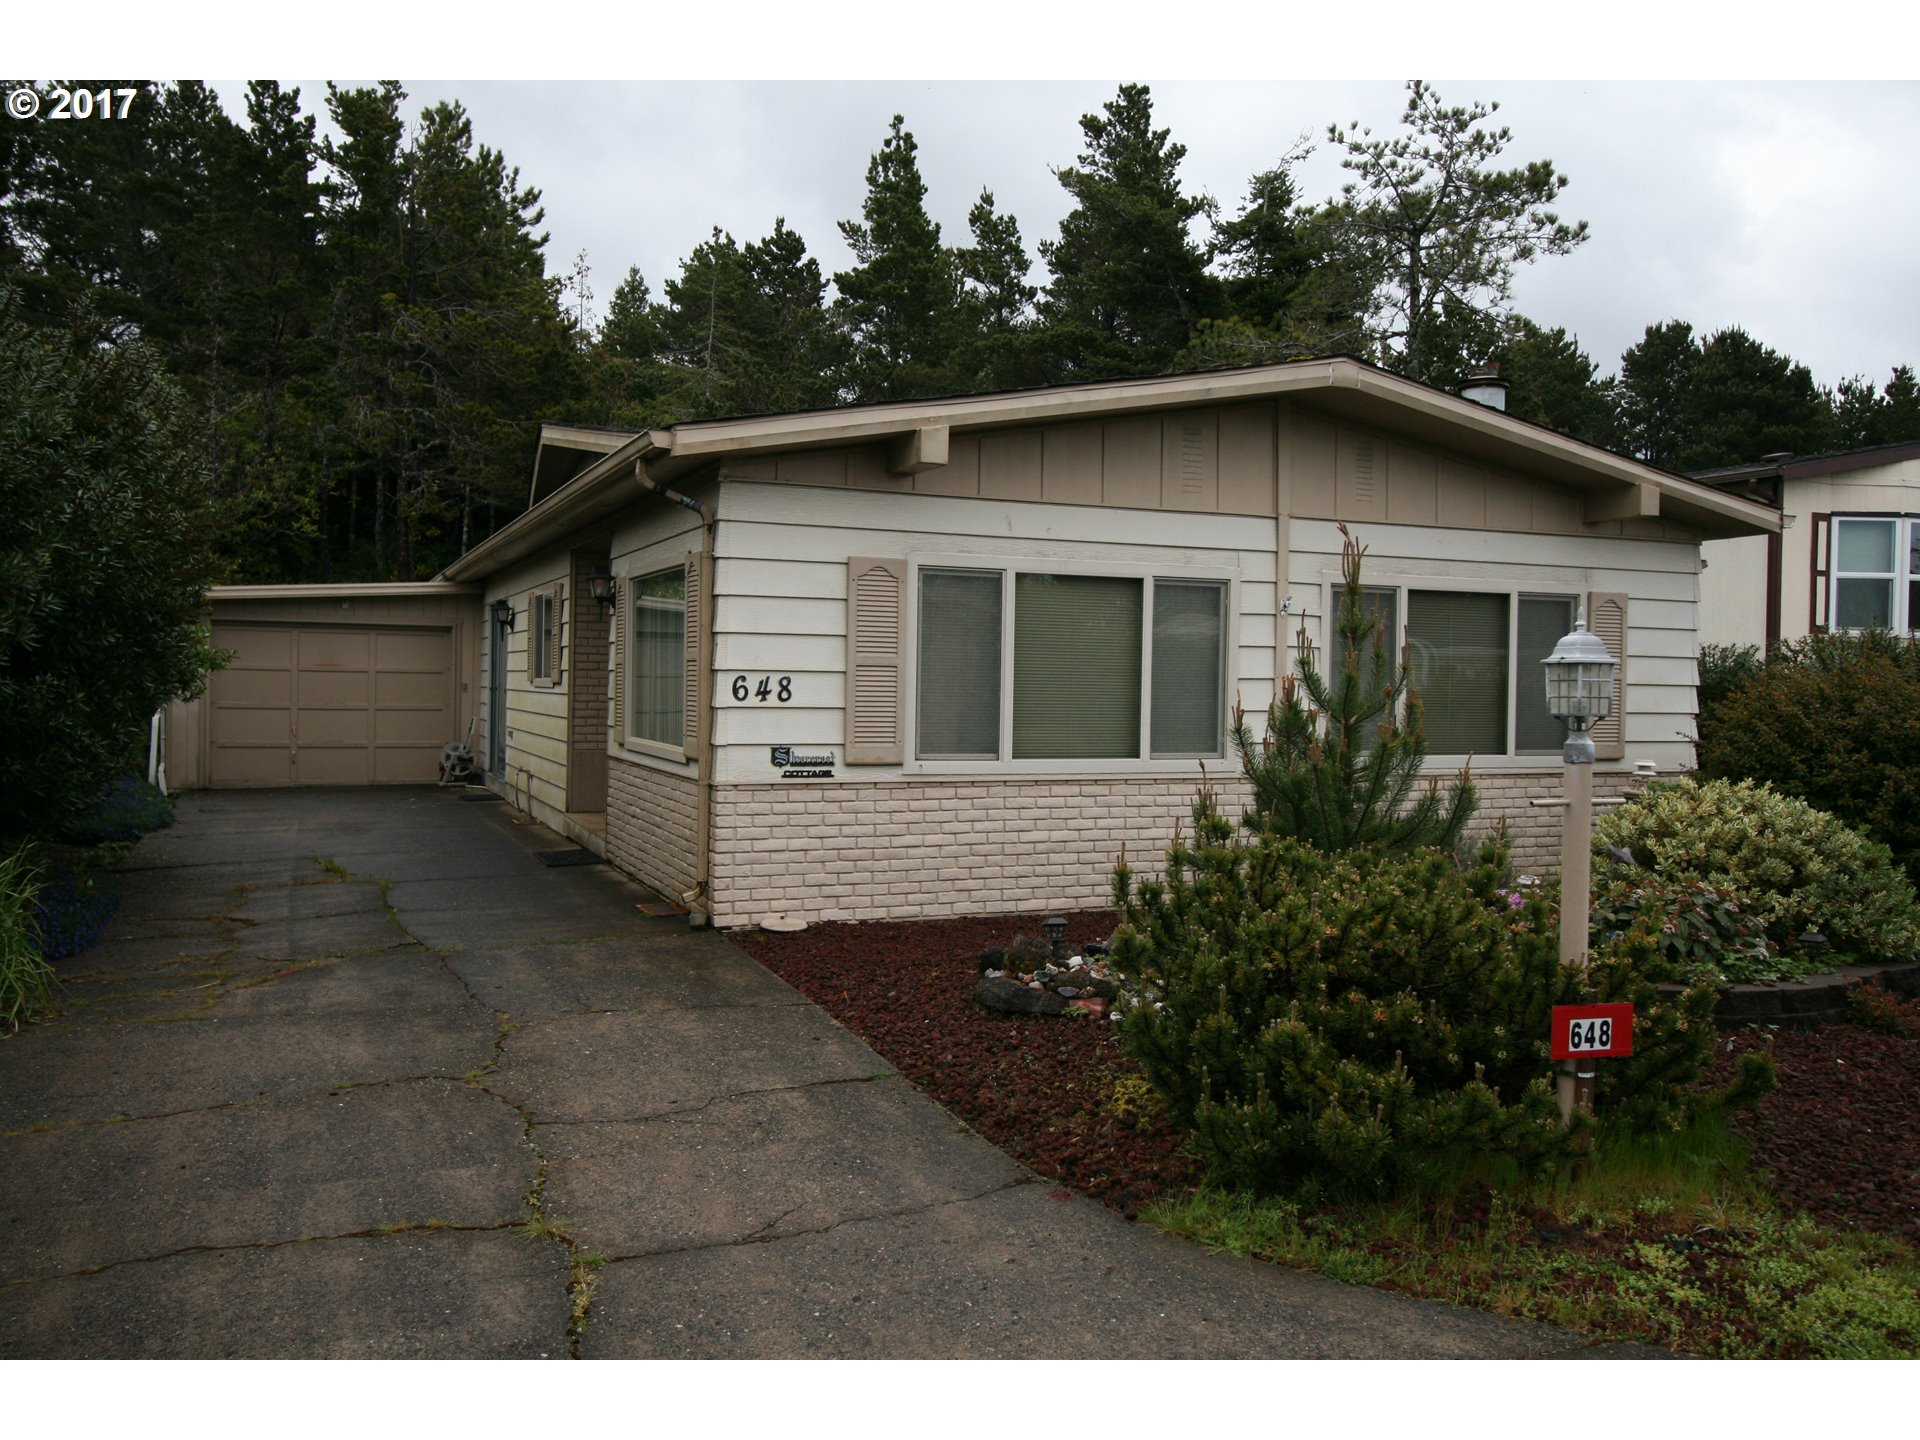 1601 RHODODENDRON DR SPAC 648, Florence, OR 97439